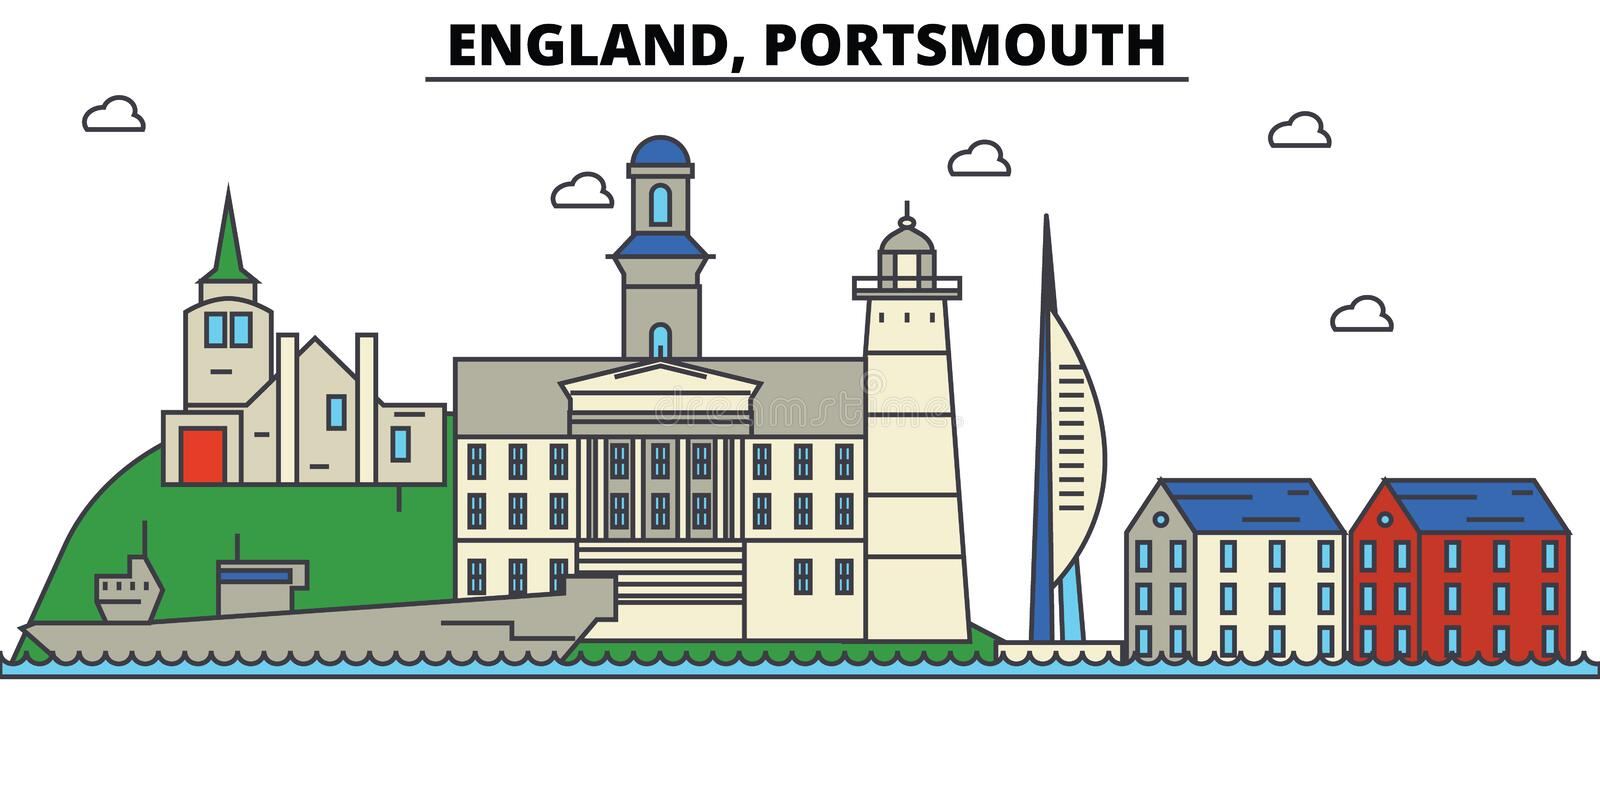 Engeland, Portsmouth De architectuur Editable van de stadshorizon stock illustratie